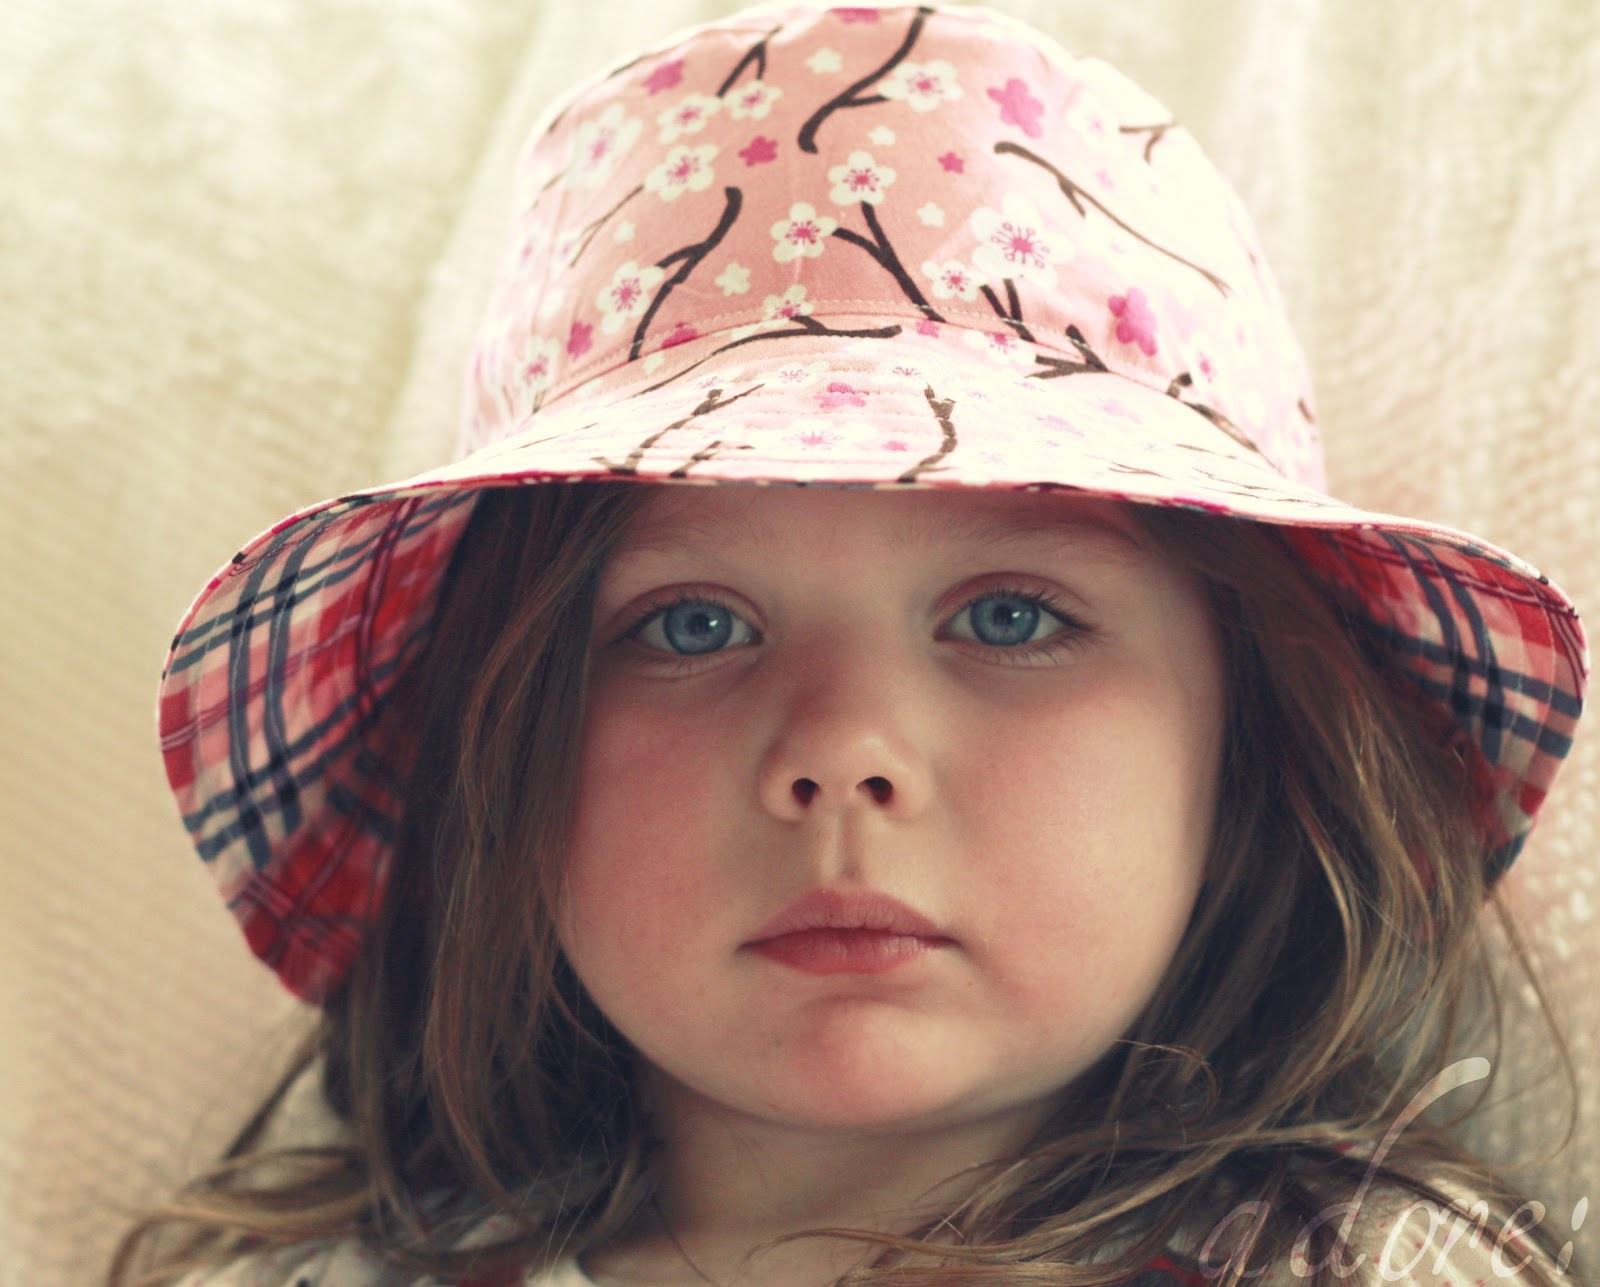 339c5c35468 Shop for and buy toddler sun hats online at Macy s. Find toddler sun hats at